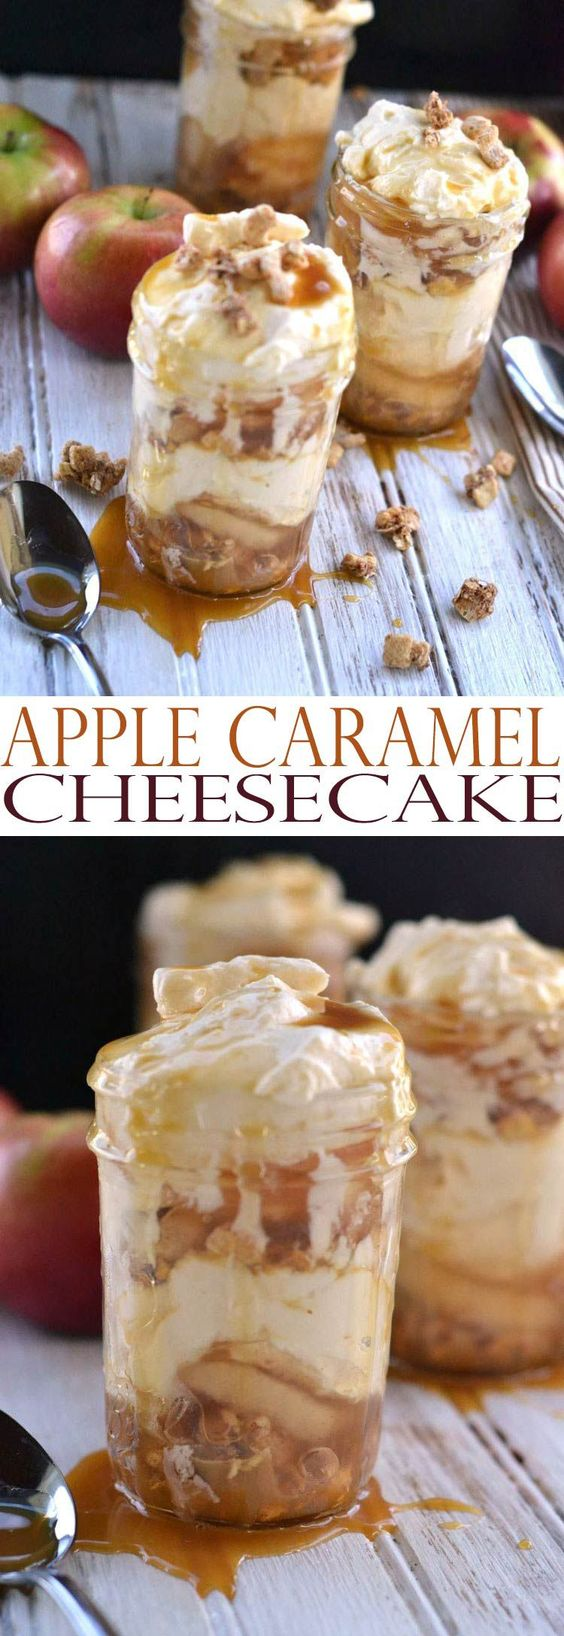 These would be perfect to serve at your Halloween Party or gorgeous on your Thanksgiving table! Apple Caramel Cheesecake Recipe – Mason Jar Desserts | All She Cooks #falldesserts #winterdesserts #christmasdesserts #thanksgivingdesserts #partydesserts #holidaydesserts #carameldesserts #appledesserts